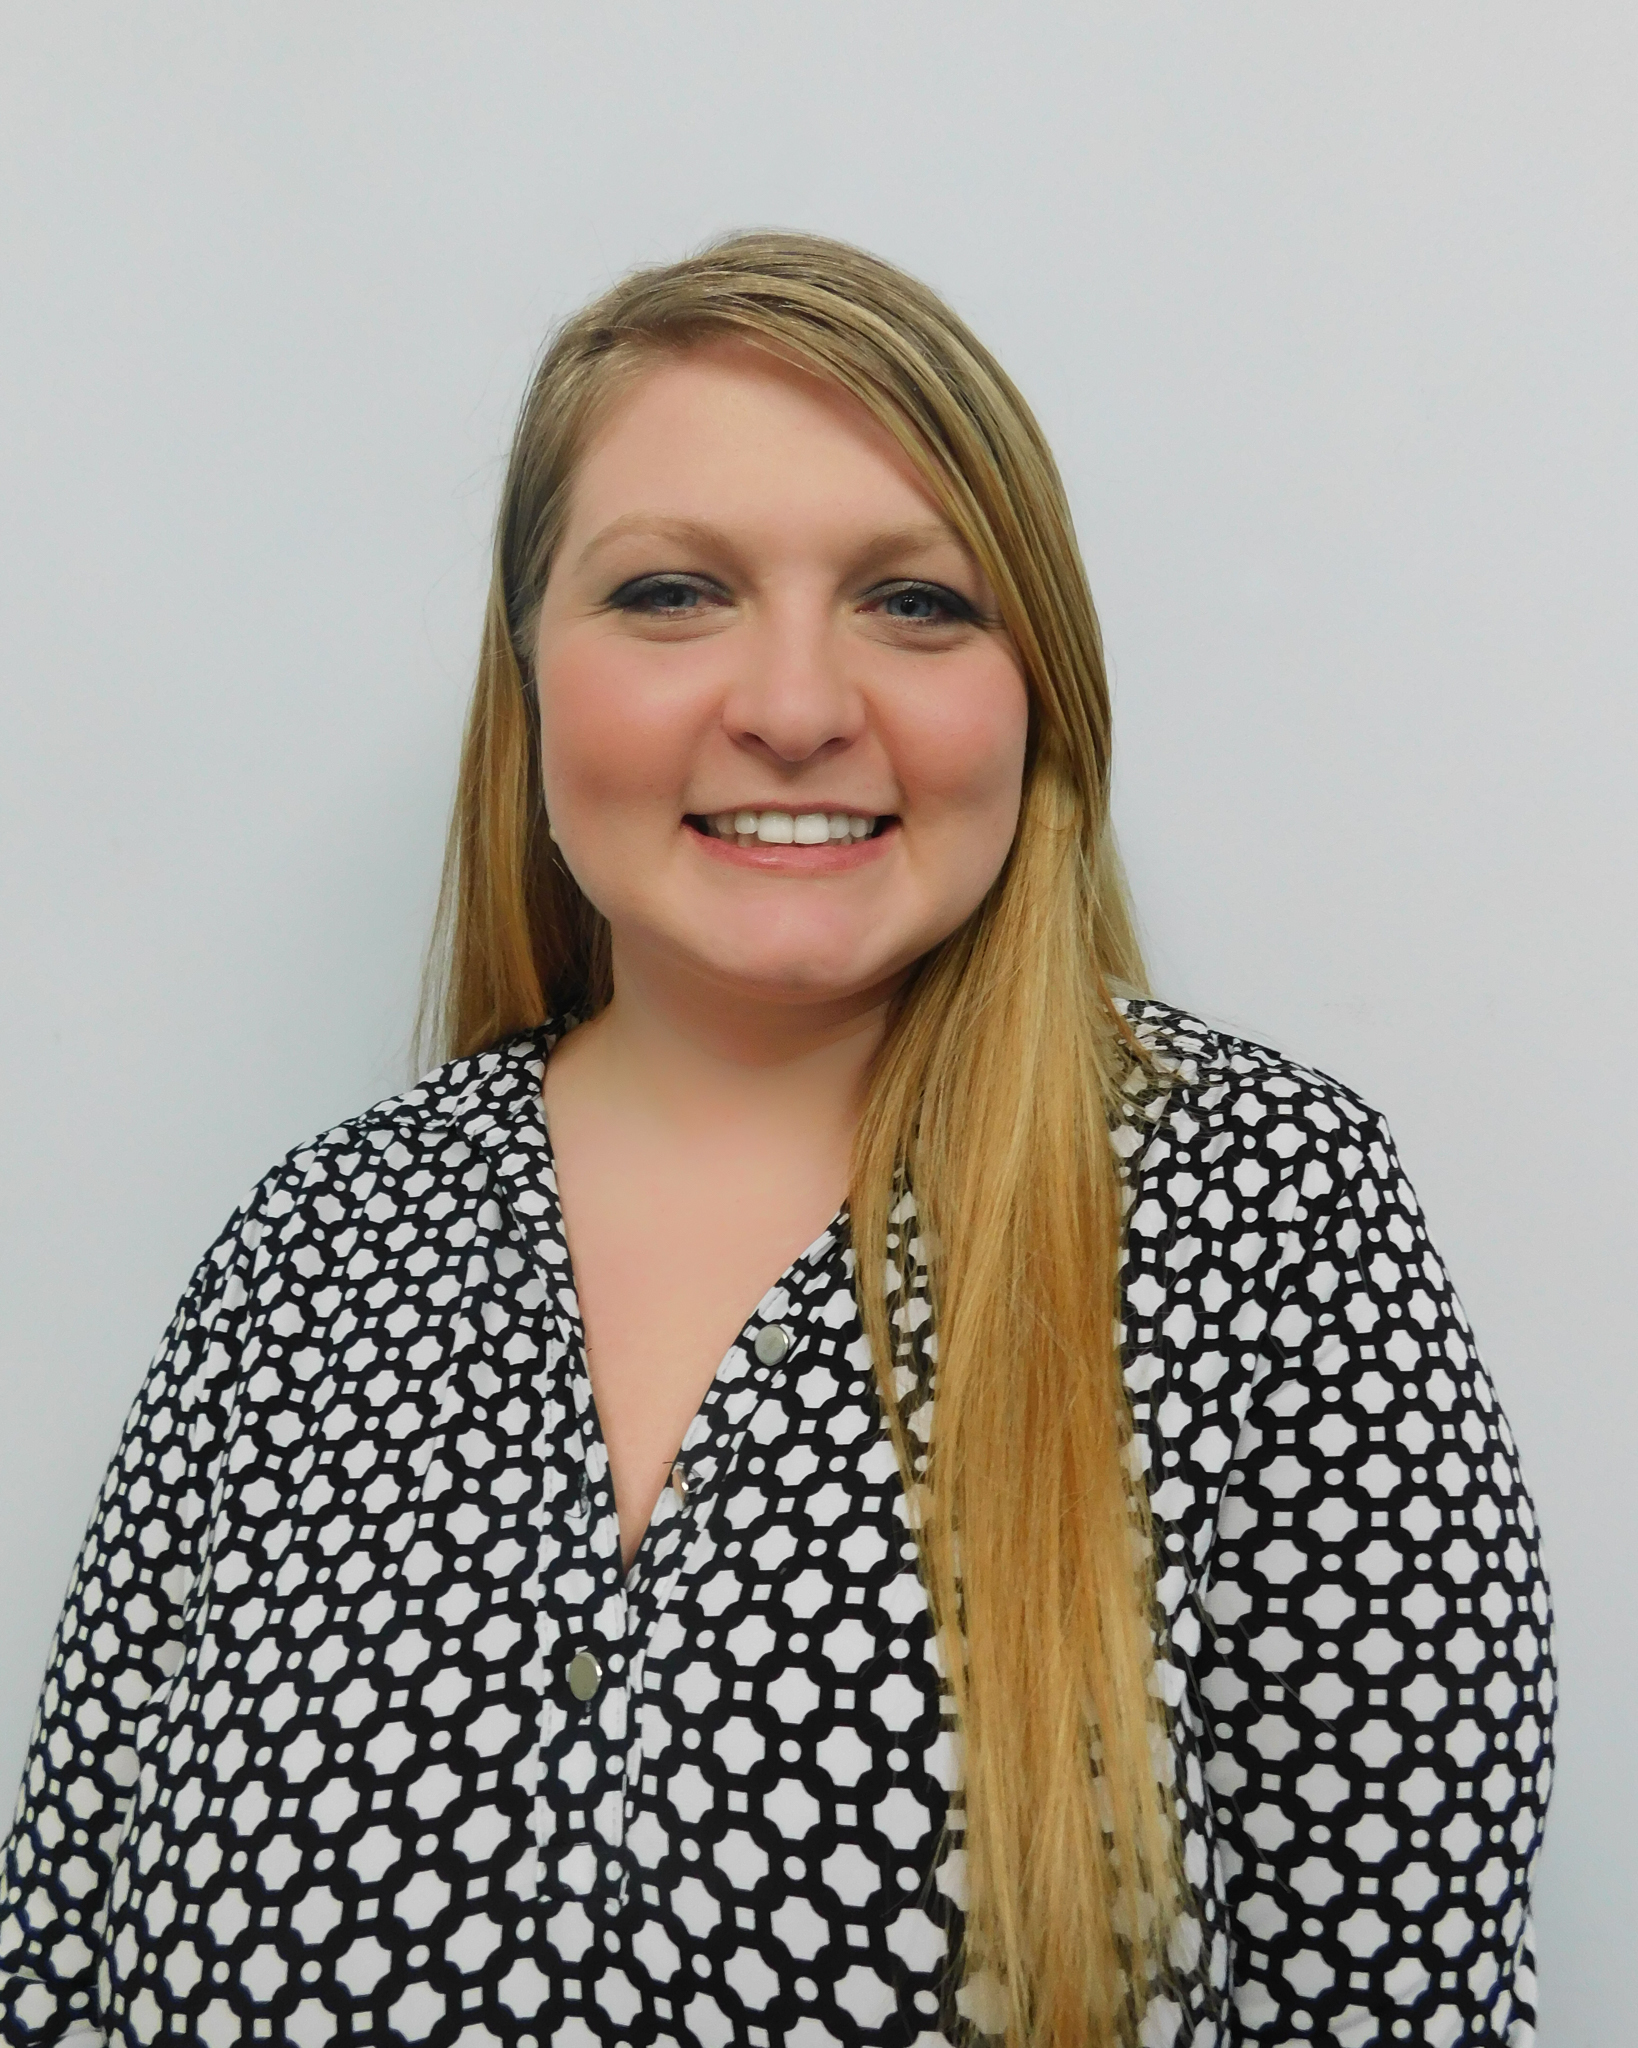 PHOTO CUTLINE: Crystal Beaman, AMG's newest Community Manager, recently achieved her AMS (Association Management Specialist) certification.